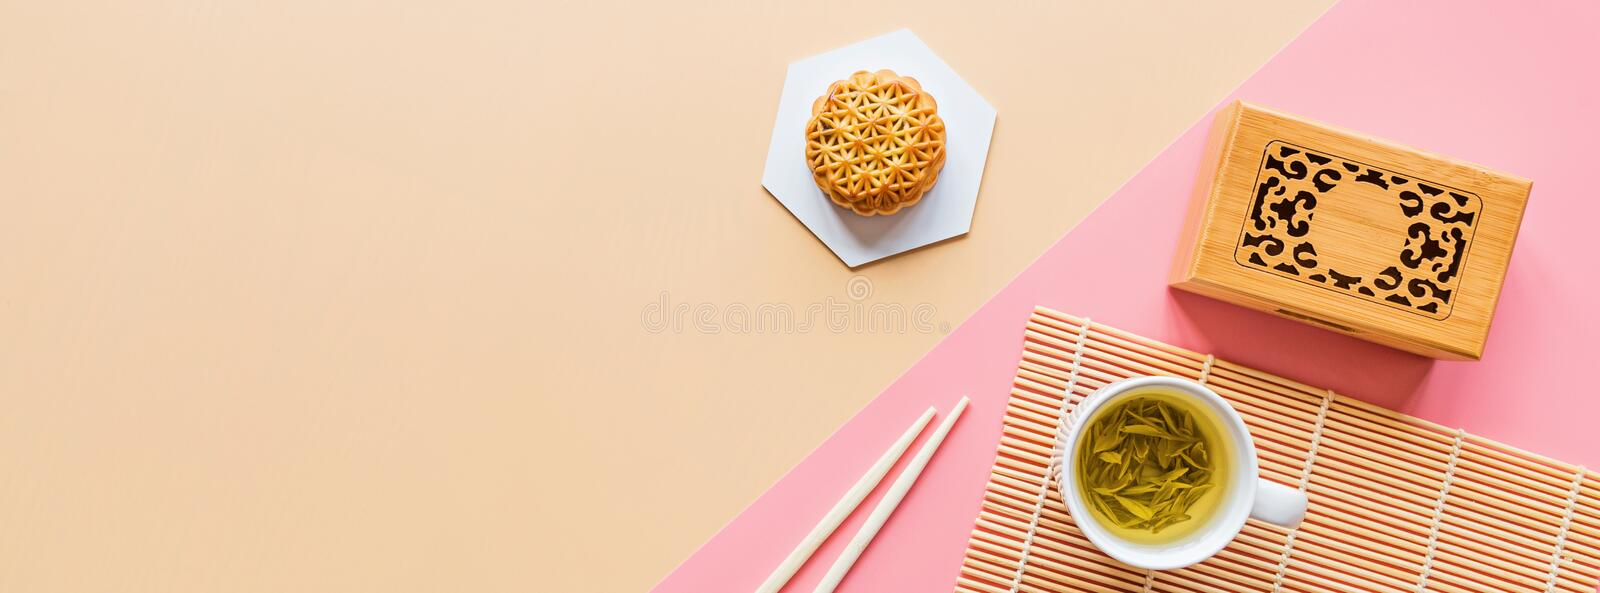 Flat lay of Chinese Festival dessert, Mid Autumn Festival Moon cake on colorful background with green tea and chopsticks. Top view stock images